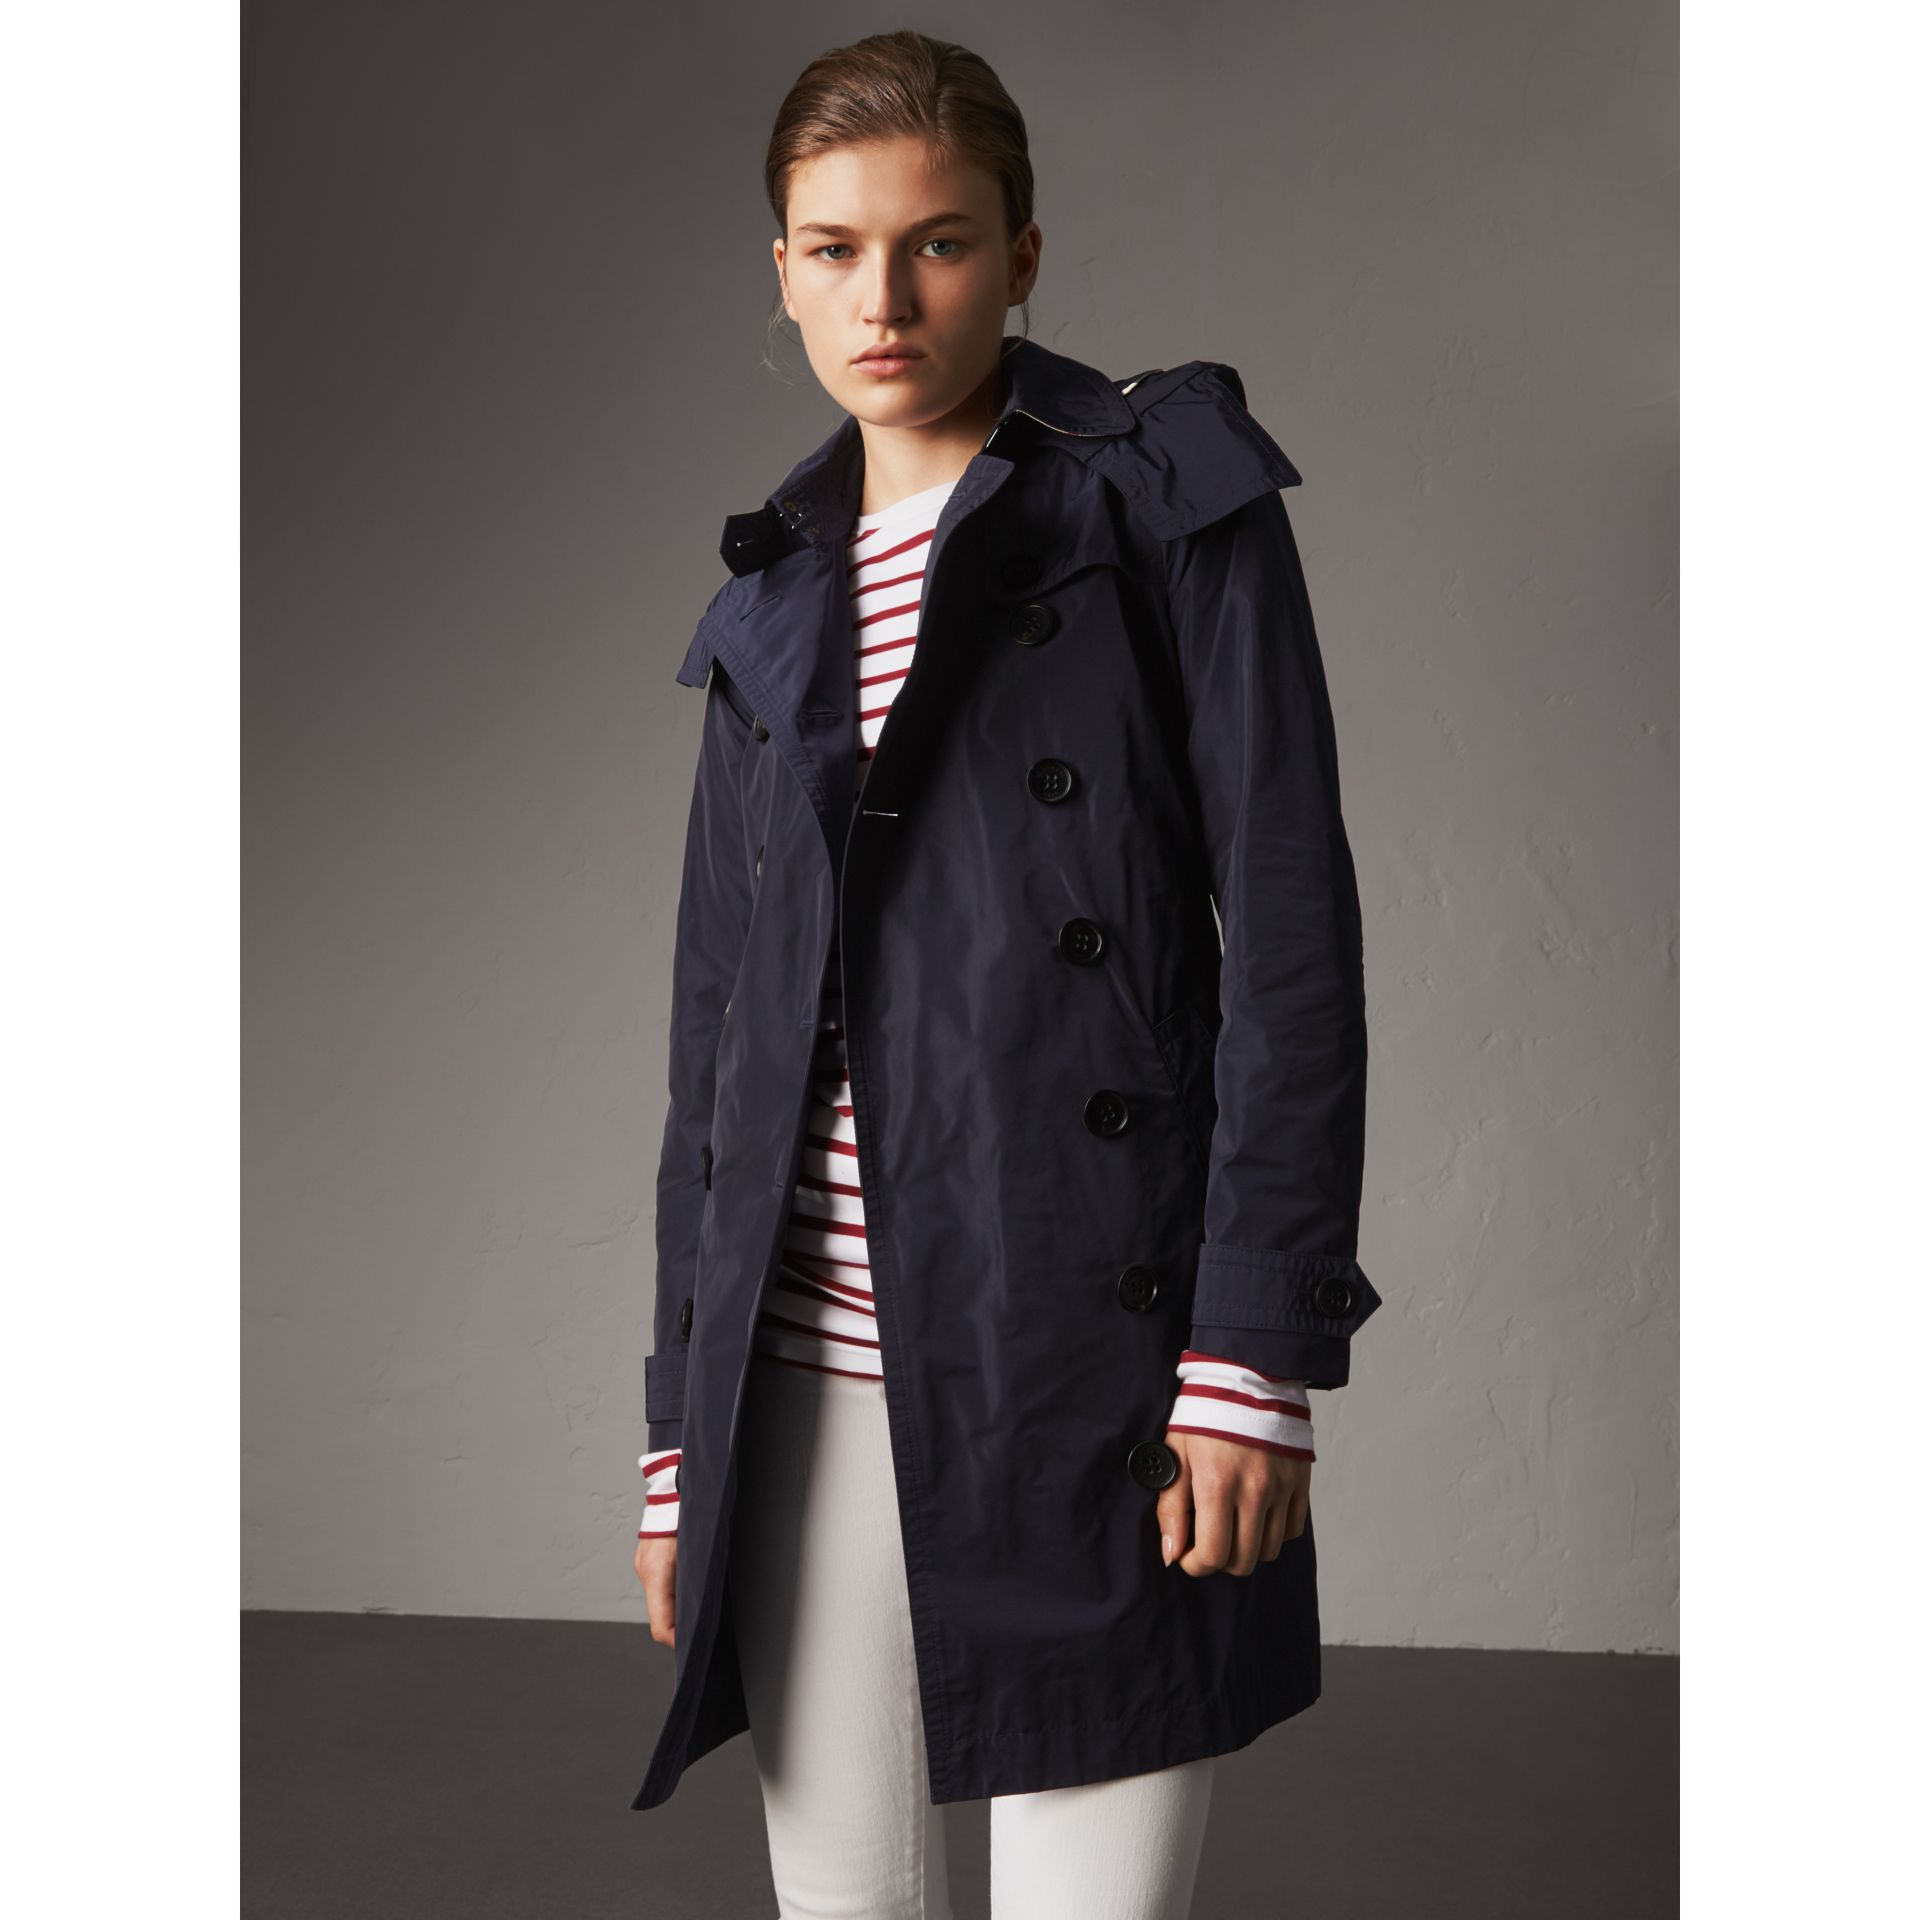 Taffeta Trench Coat with Detachable Hood in Navy - Women | Burberry United Kingdom - gallery image 1